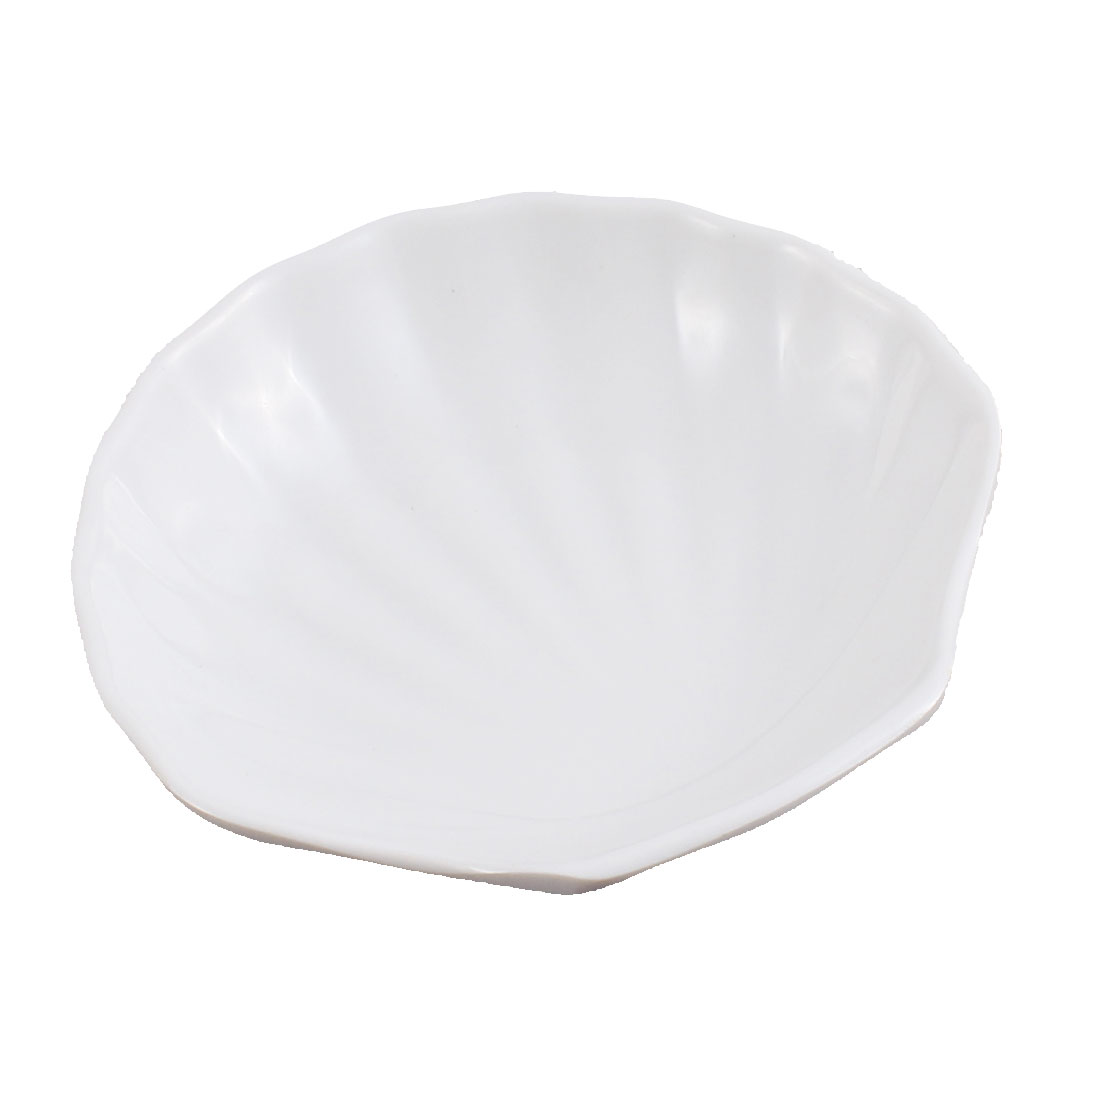 Seashell Shape Soy Sauce Dipping Mini Dish Plate 4 Inch Length White